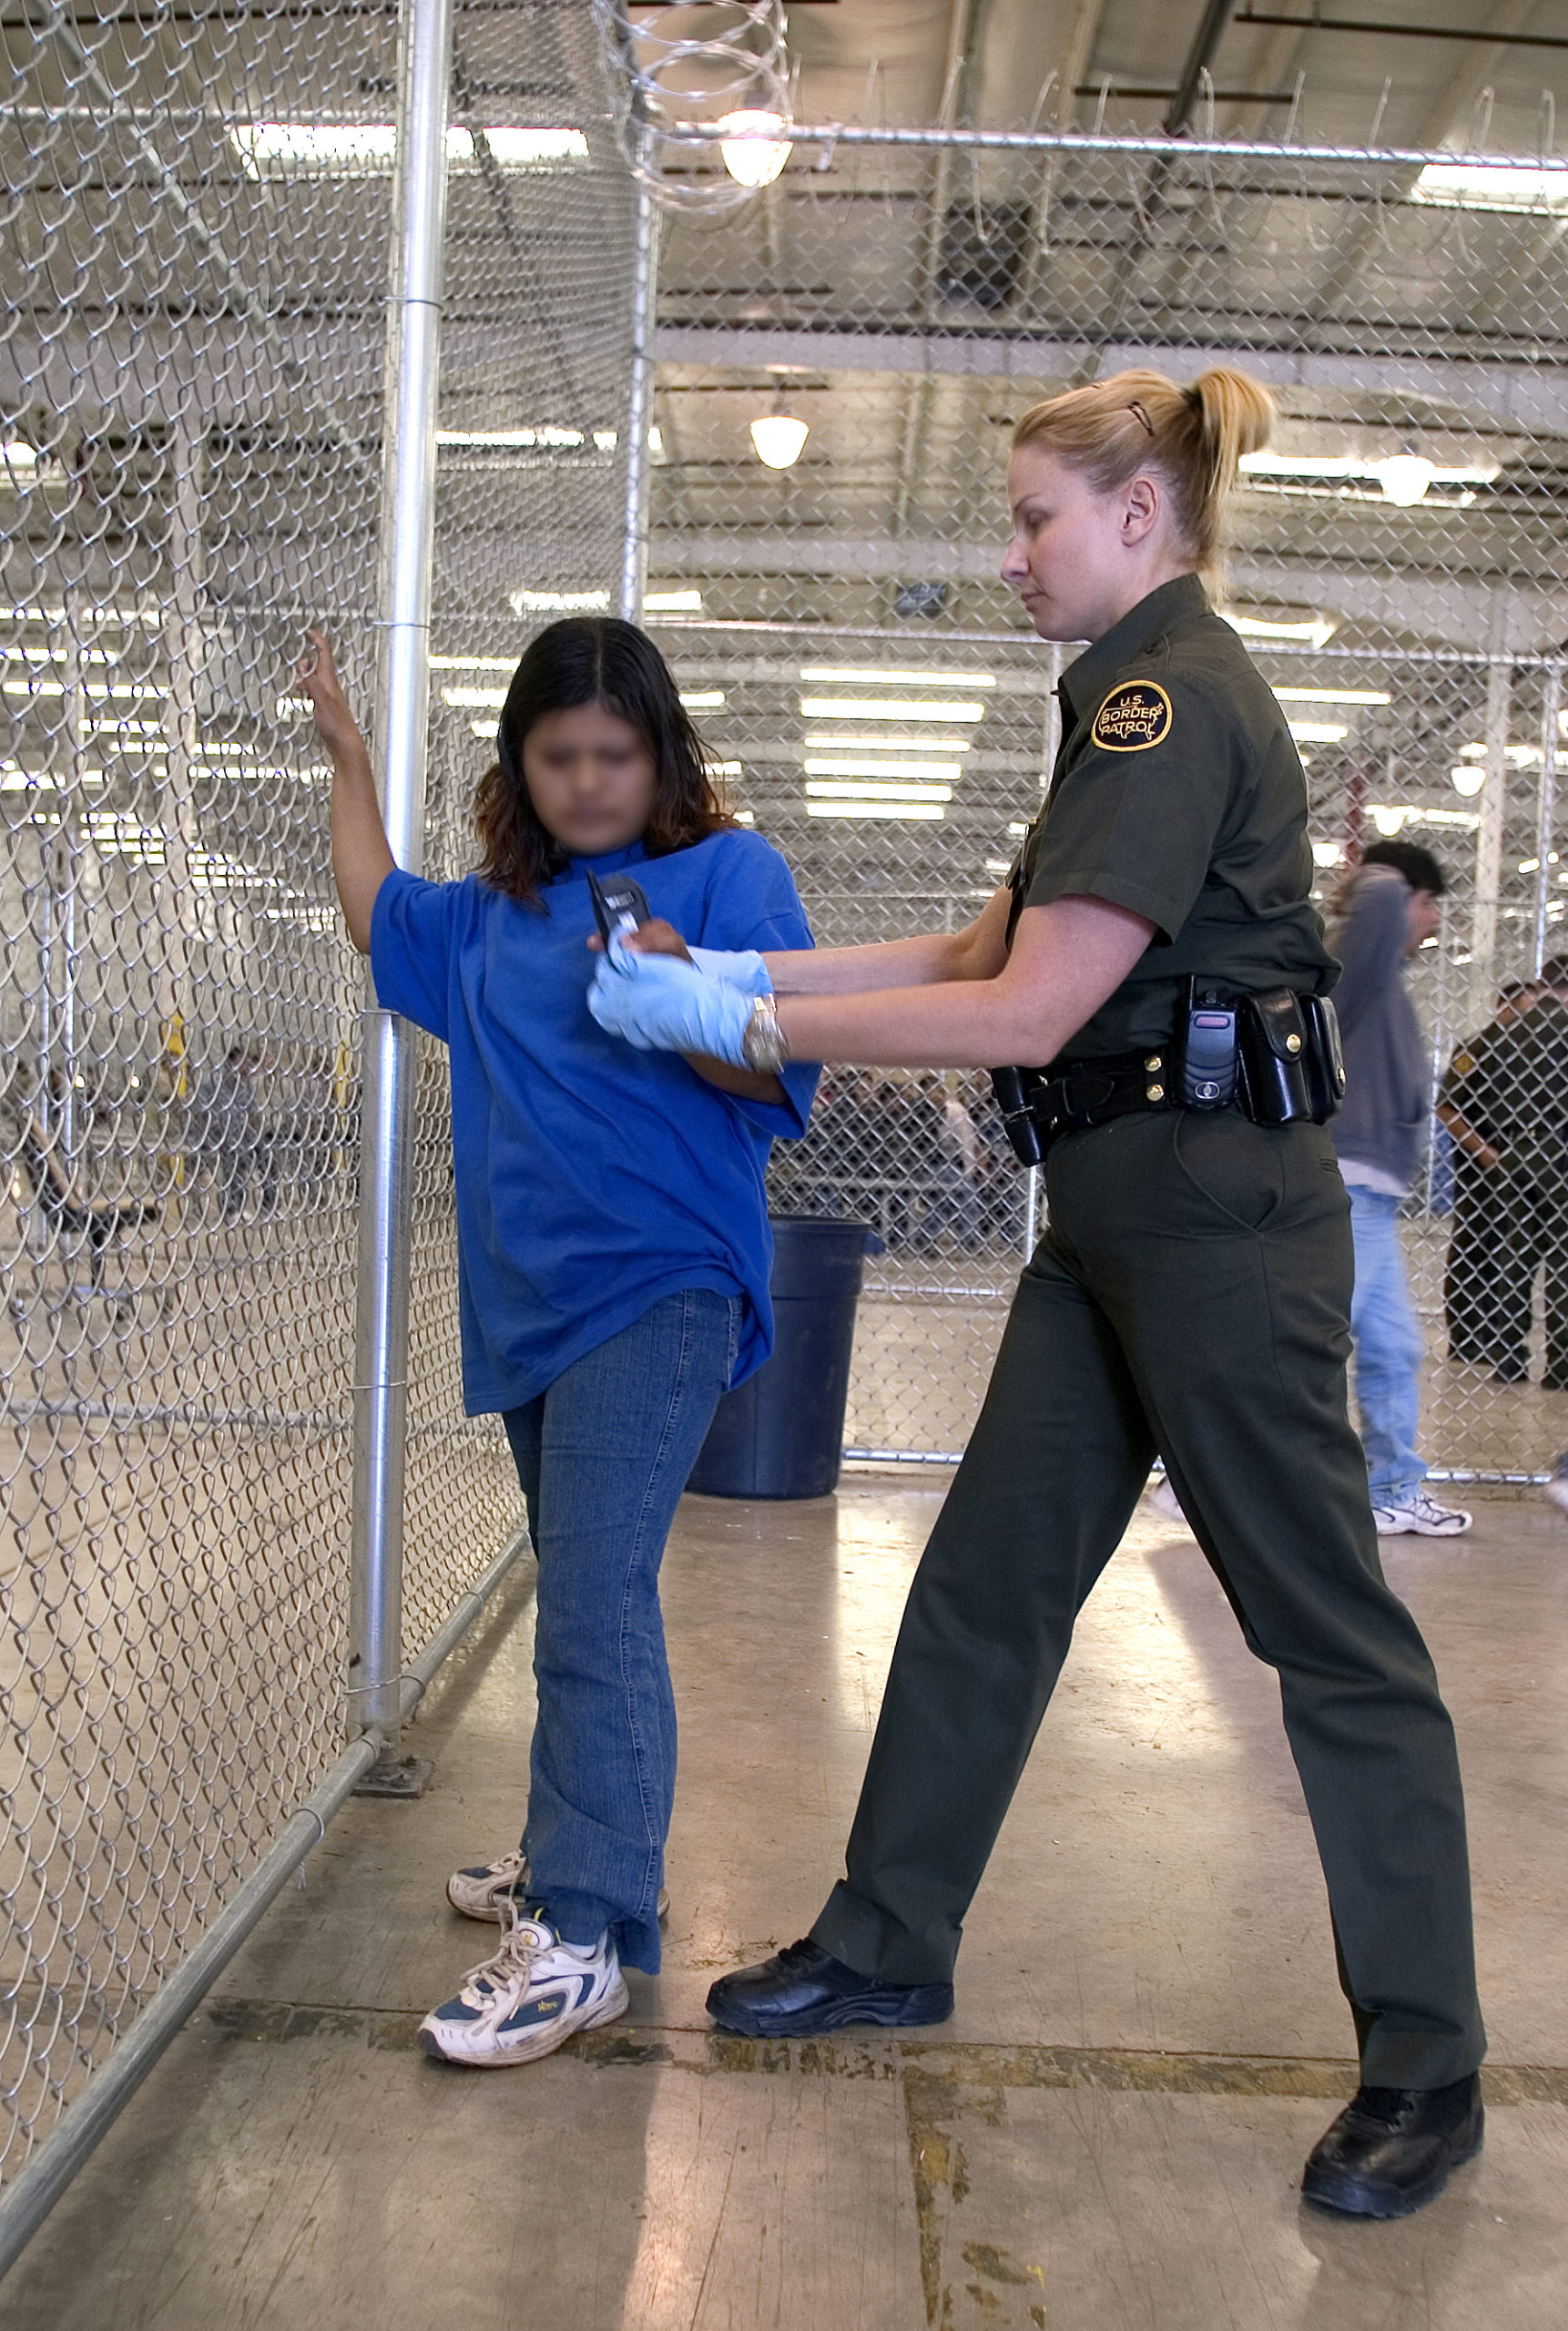 Issue: Immigration, Child Detention and COVID-19 protocols